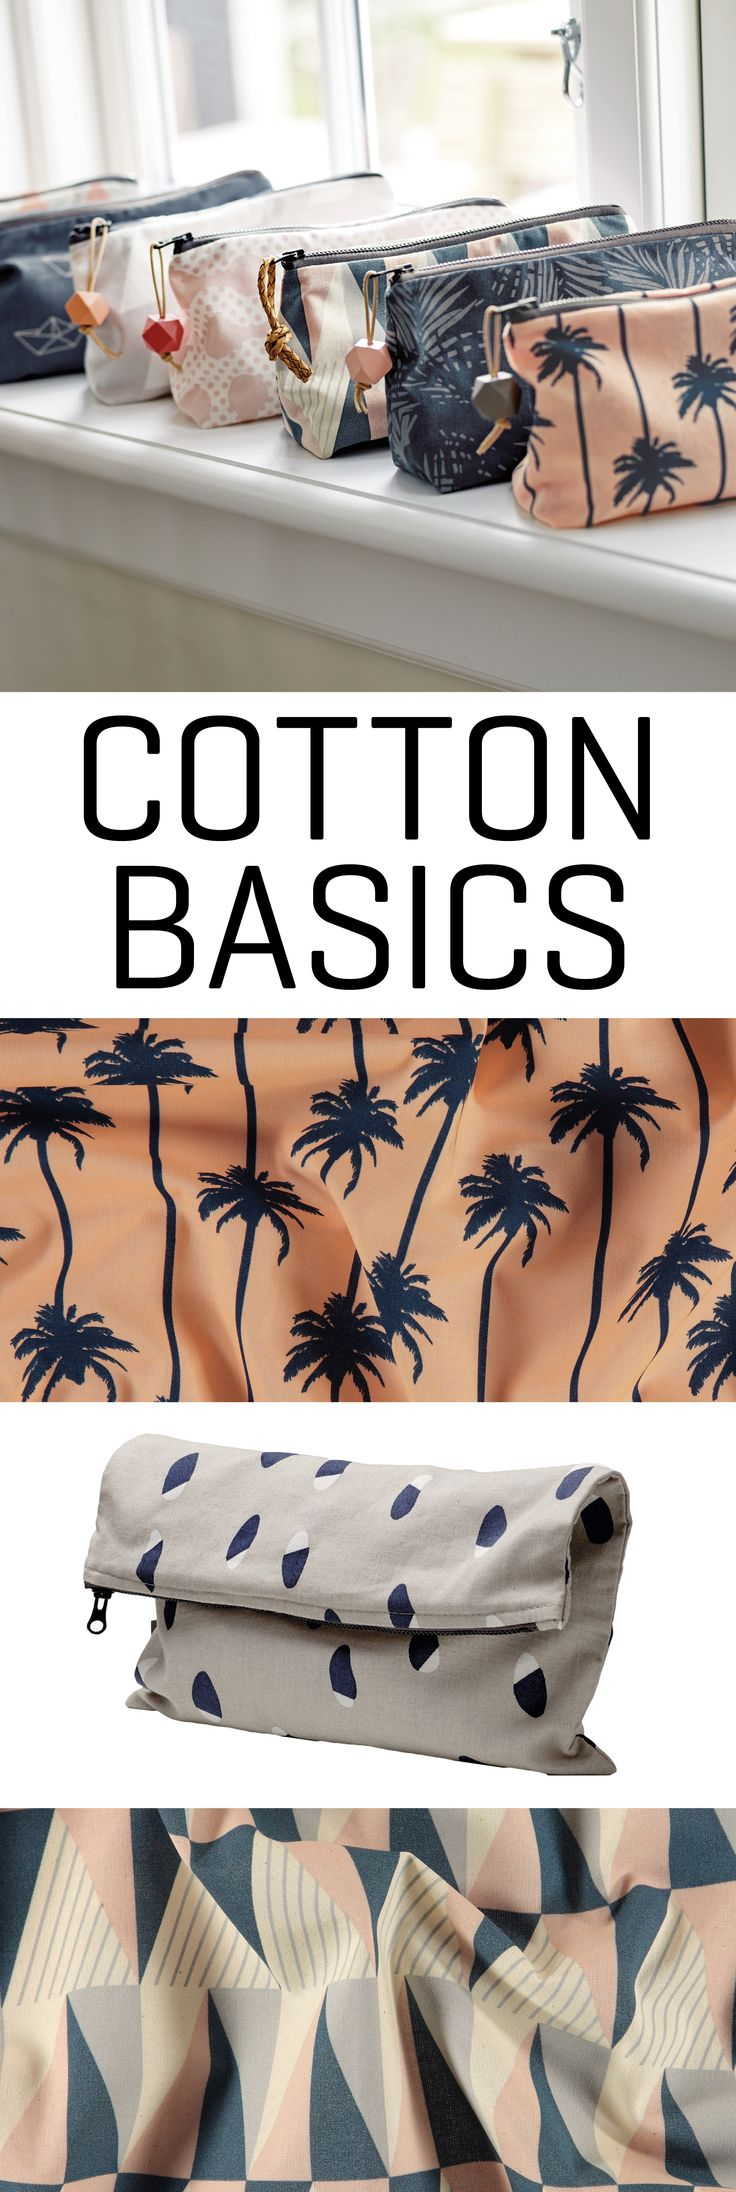 New collection = New basic cotton prints. Go all in with new colours and prints and use it for new DIY projects!